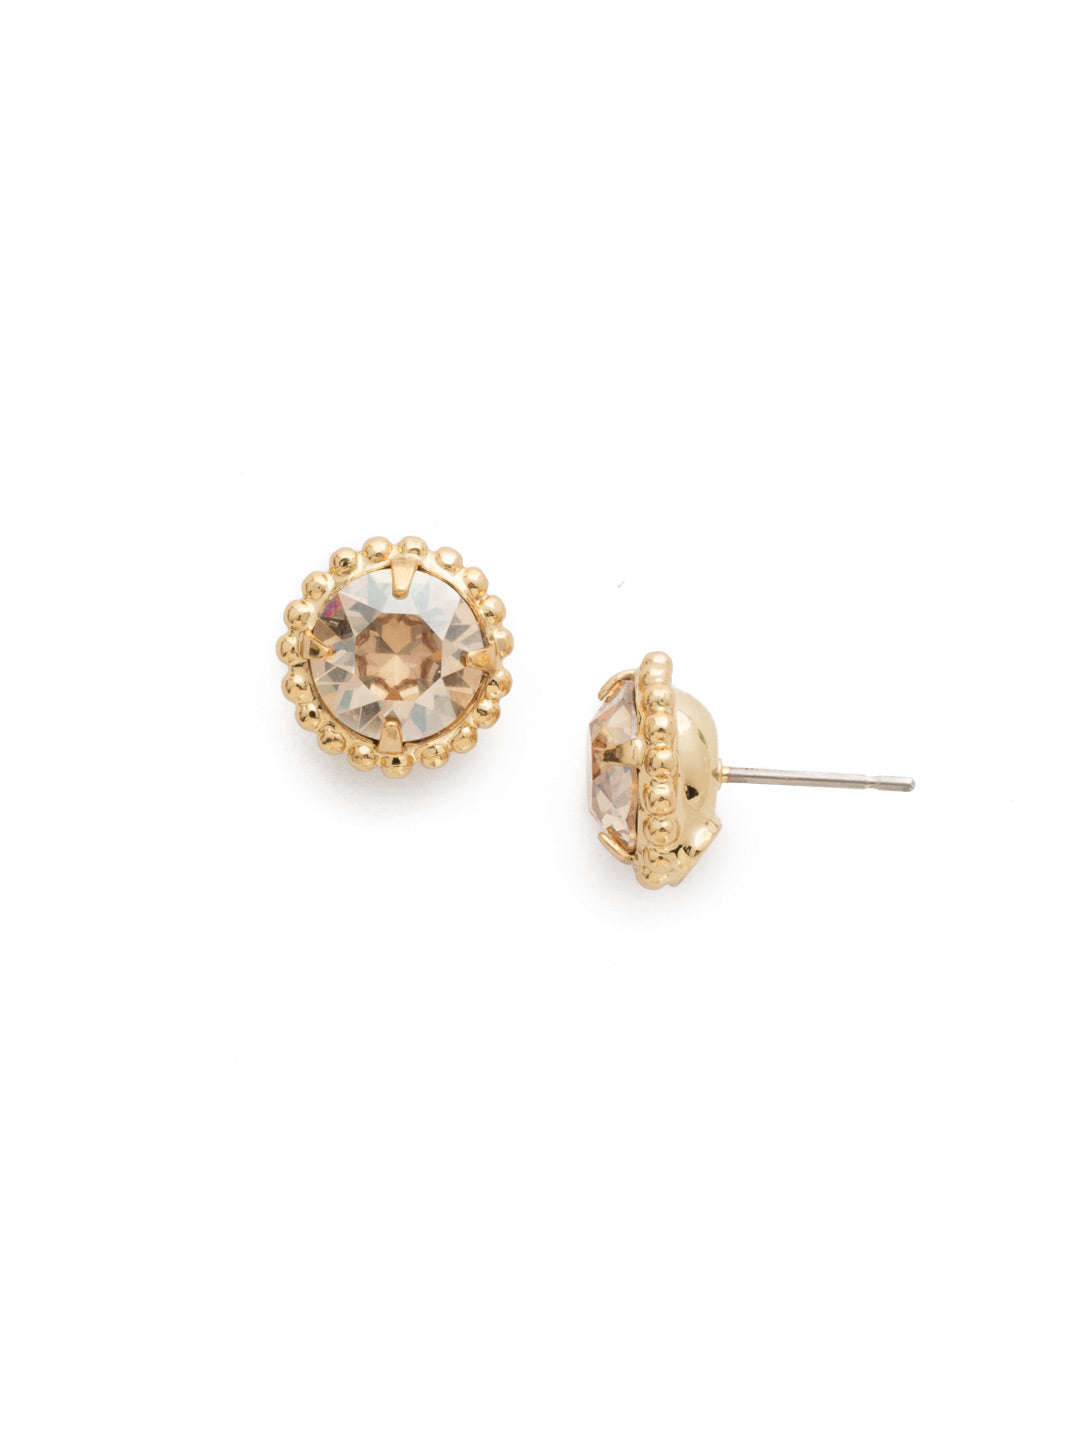 Simplicity Stud Earrings - EBY38BGDCH